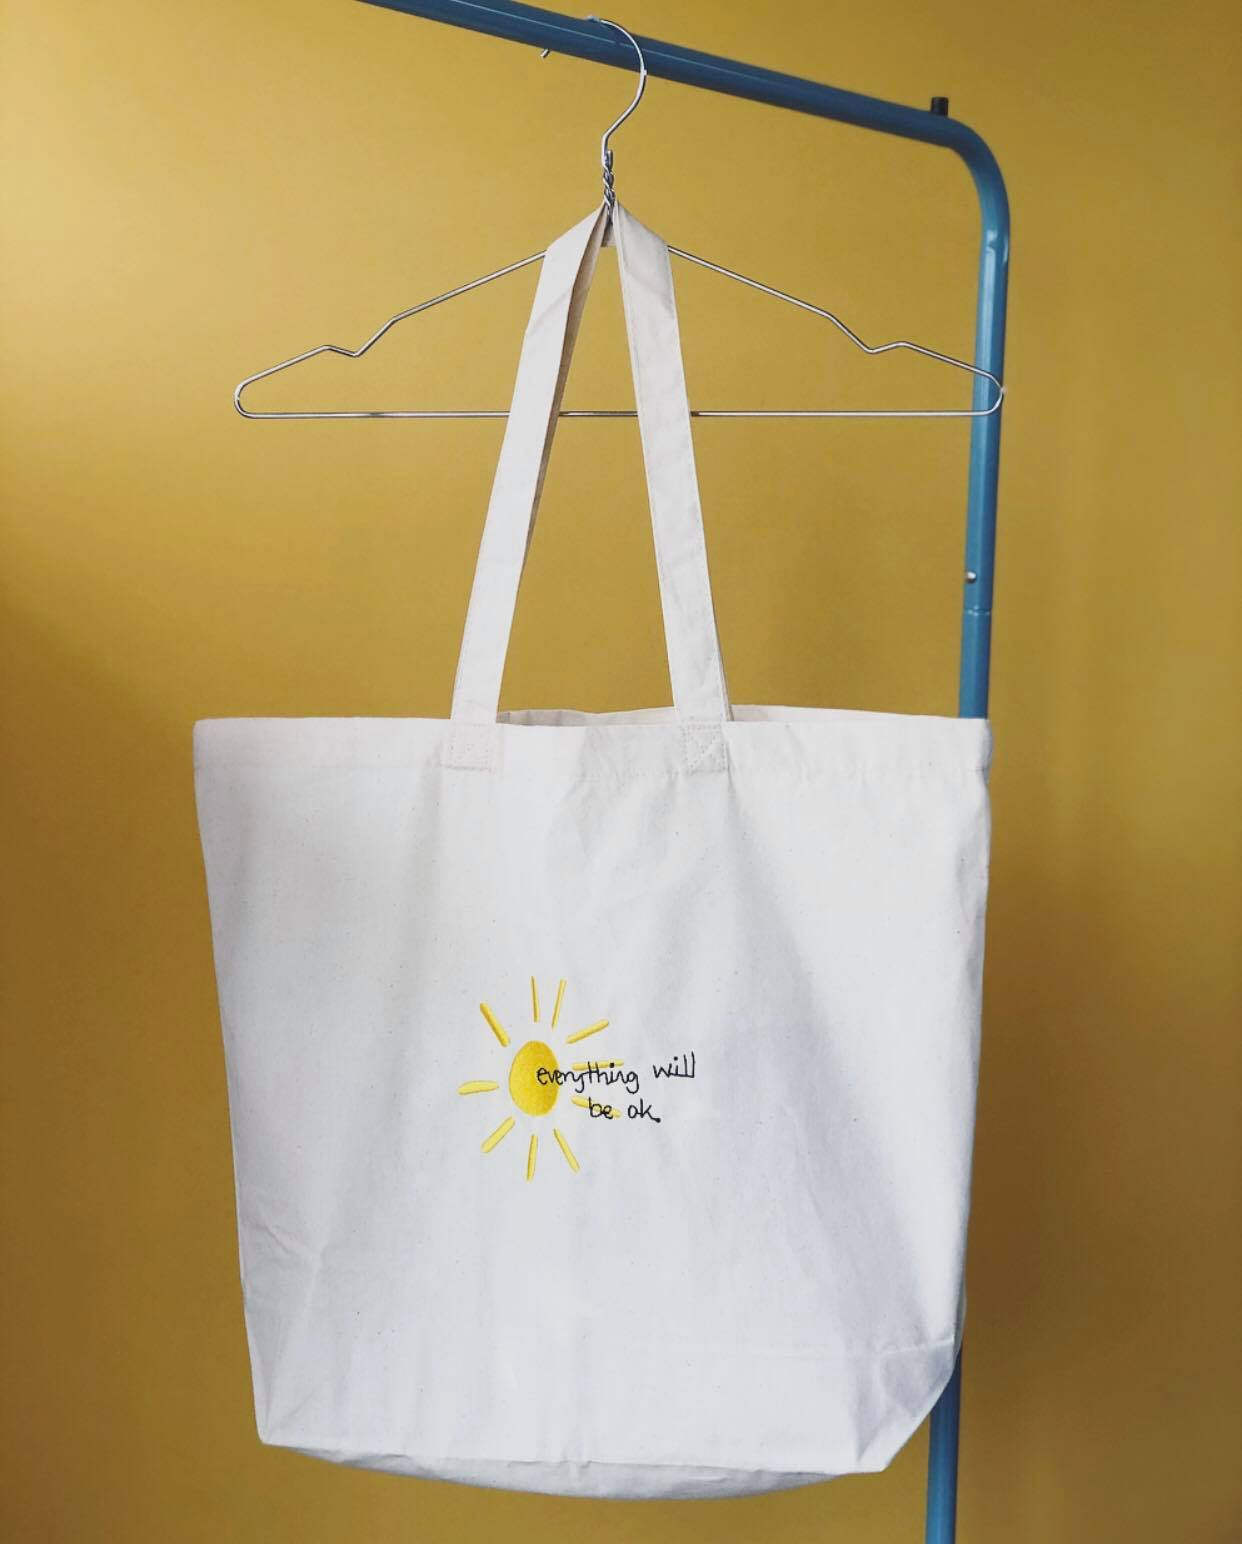 Everything will be ok sun embroidered tote bag